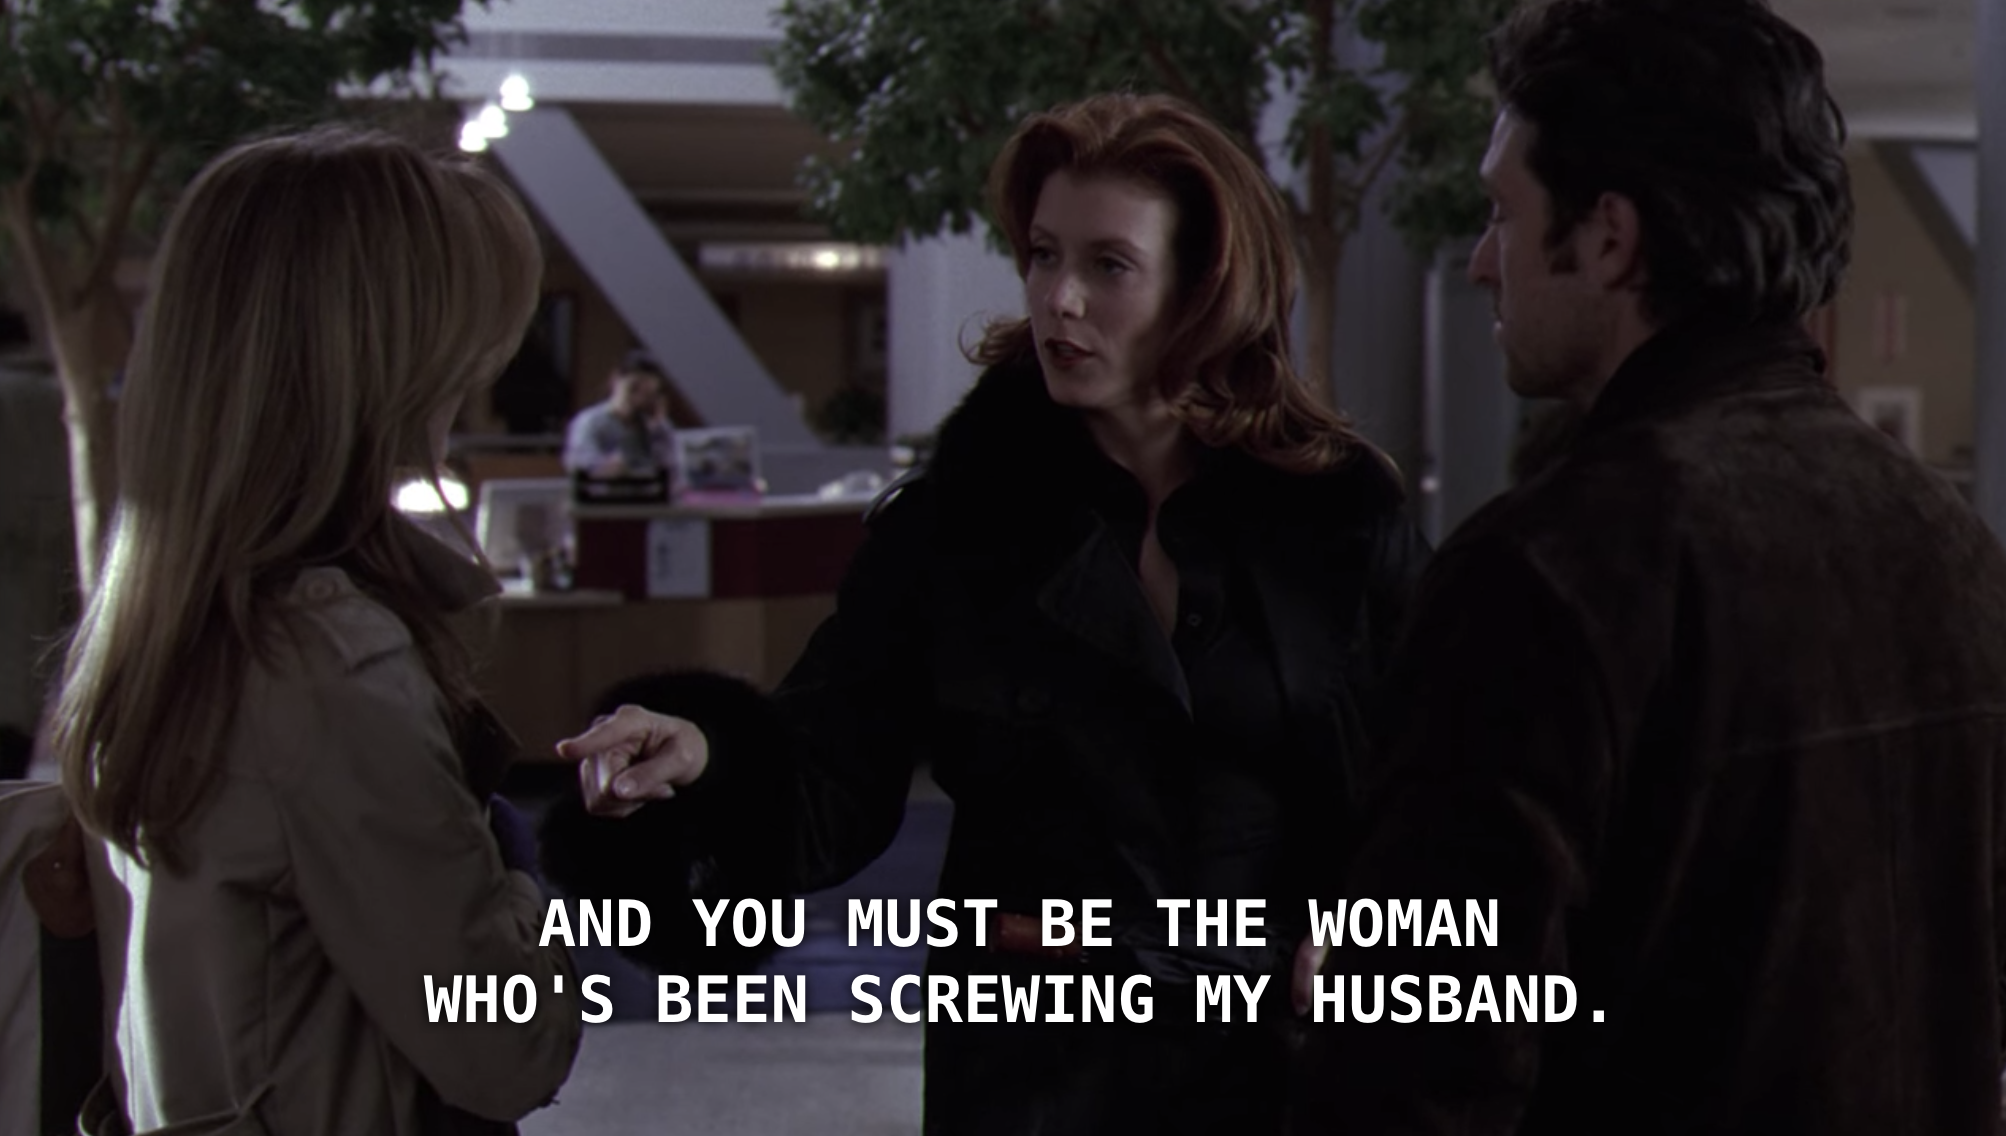 Addison confronting Meredith in the hospital lobby